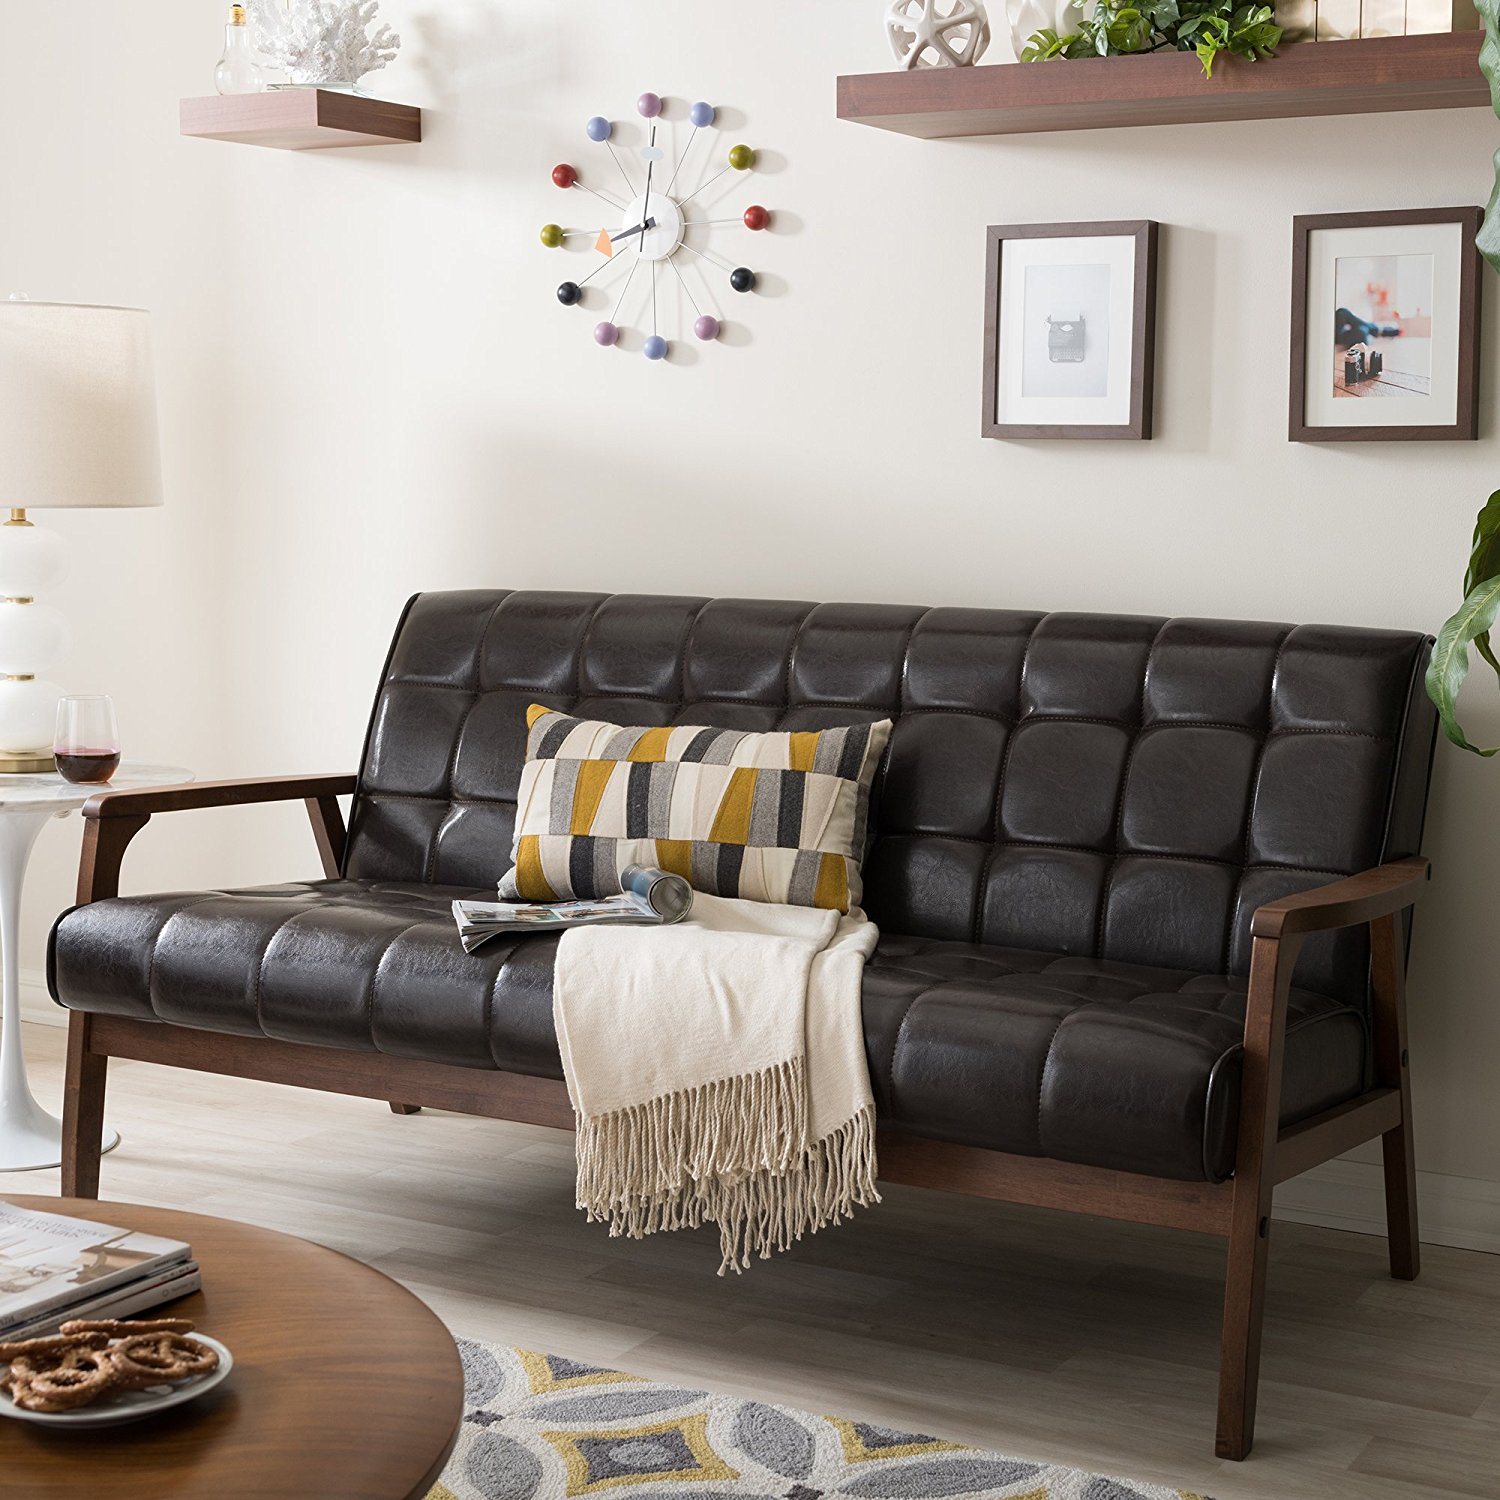 Baxton mid-century sofa is a great cheap leather sofa you can have in your home.